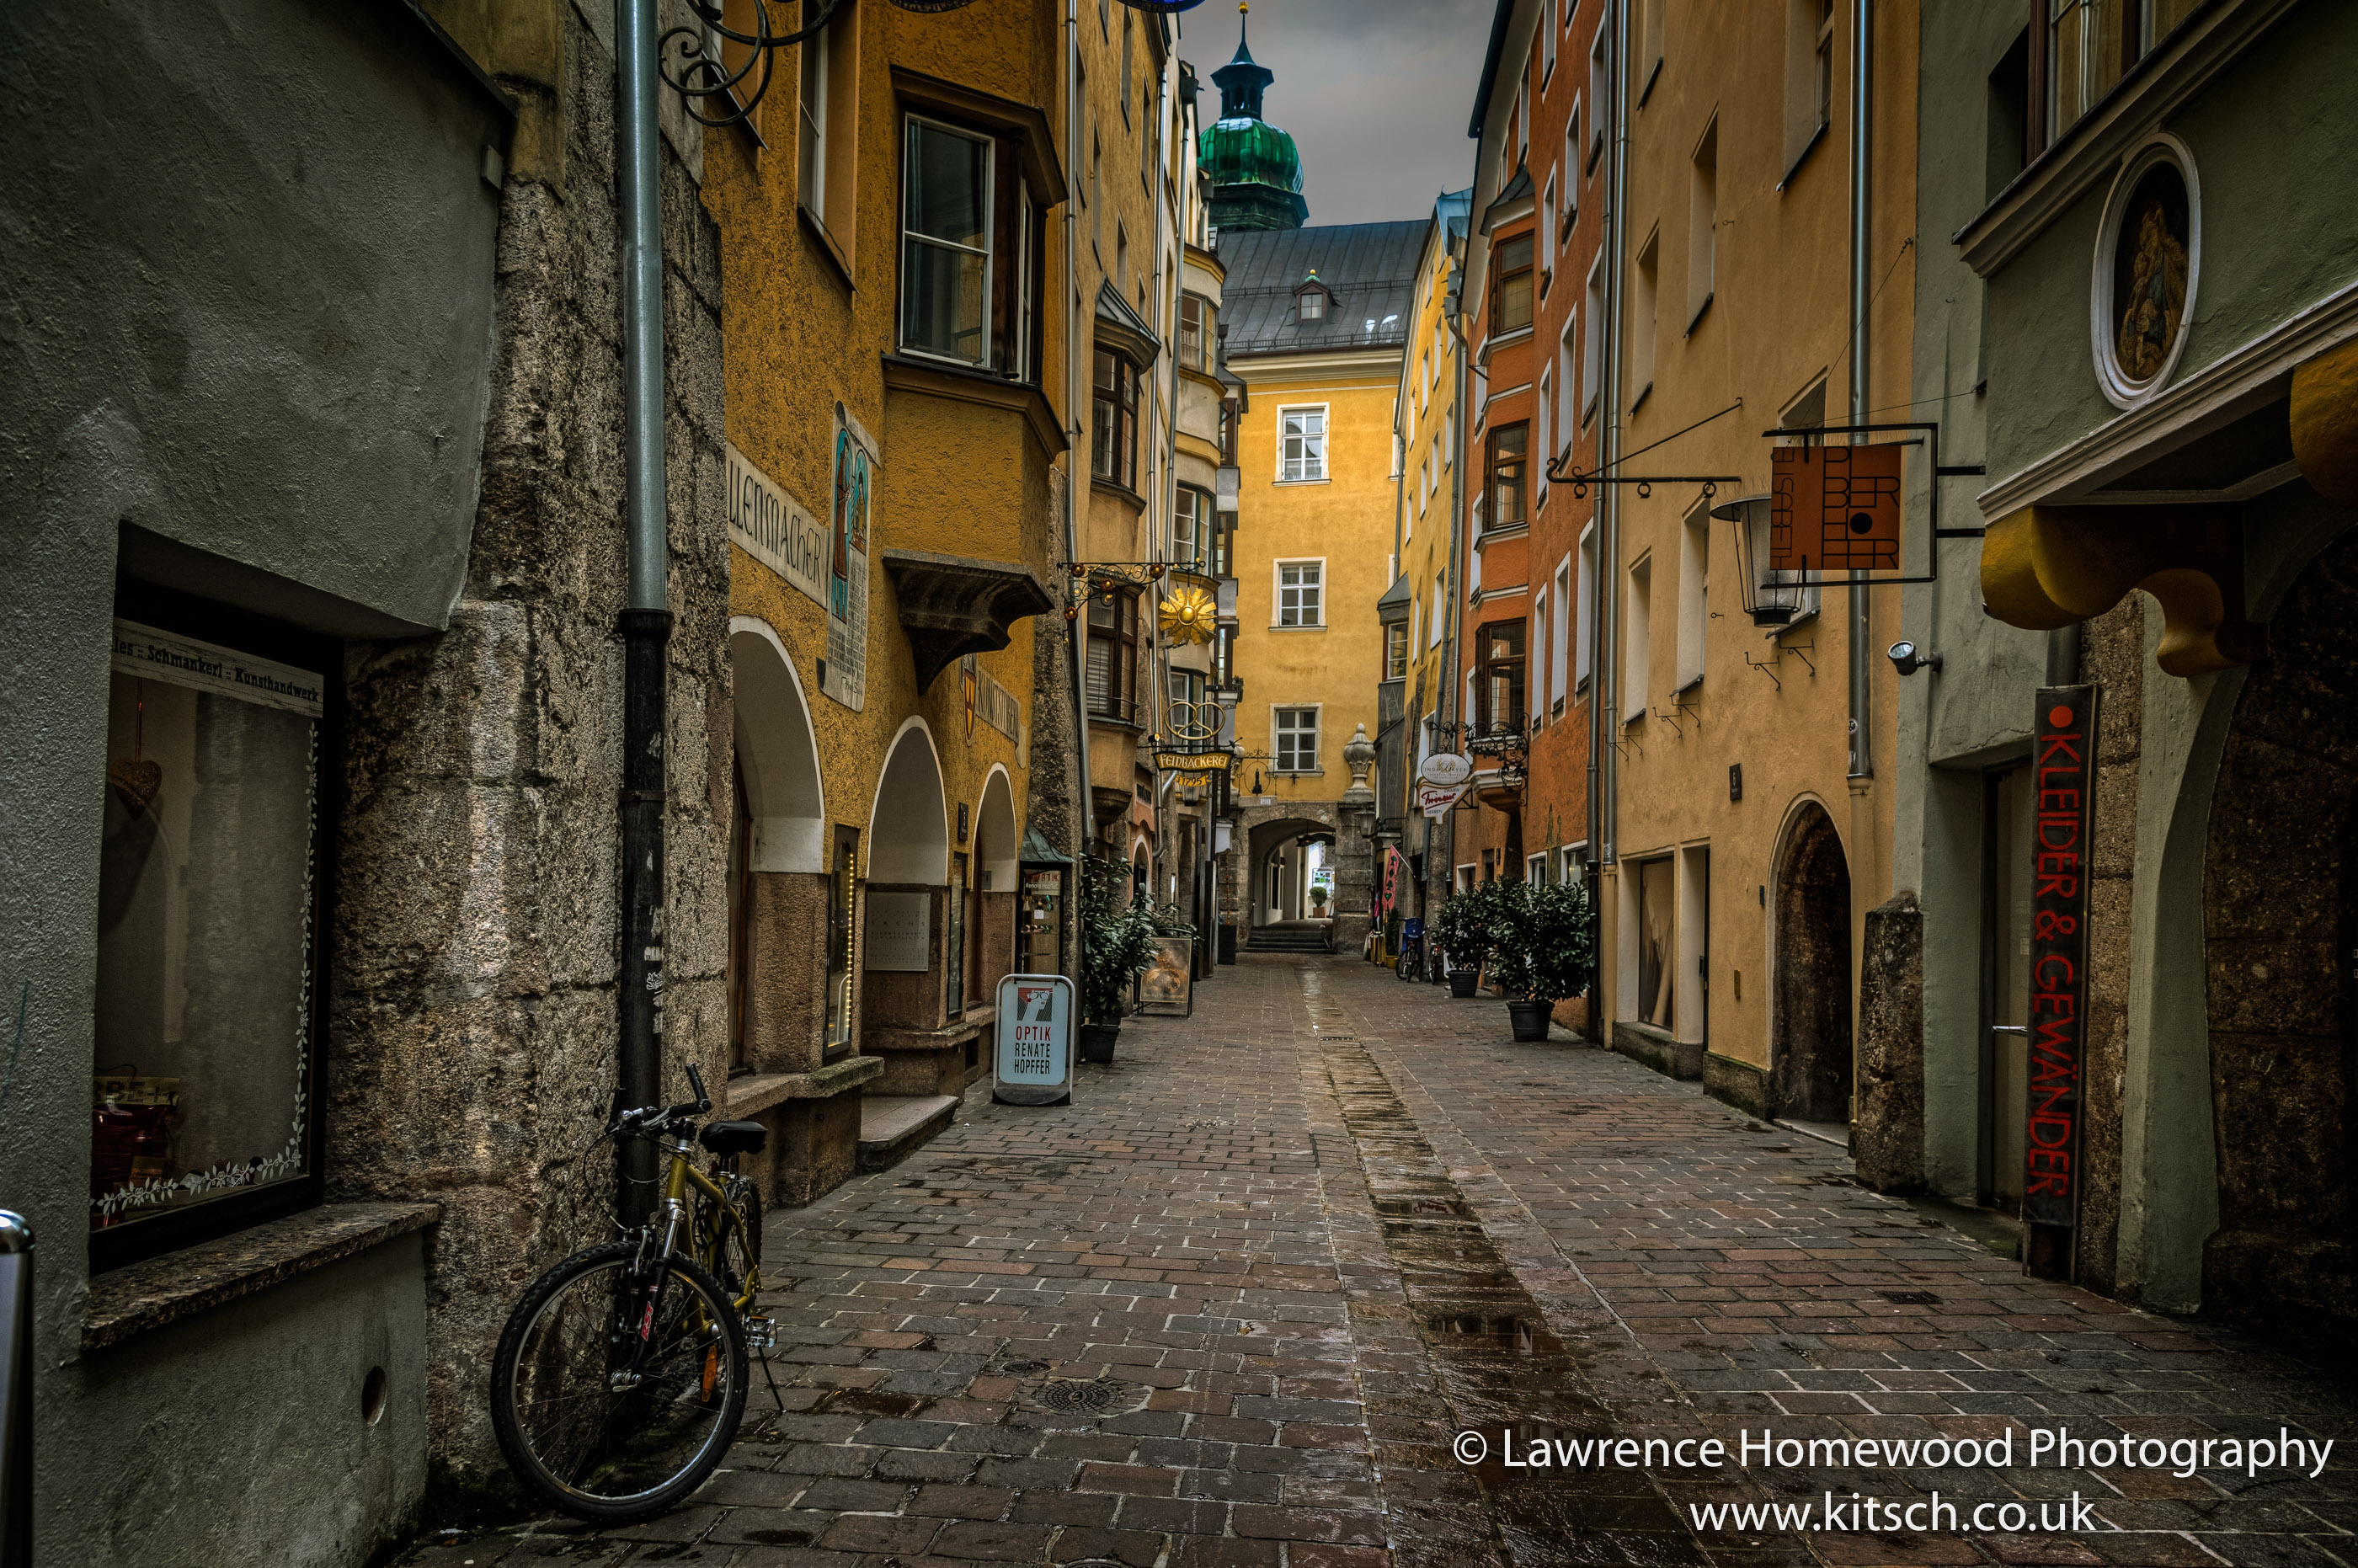 The Narrow Streets of Innsbruck